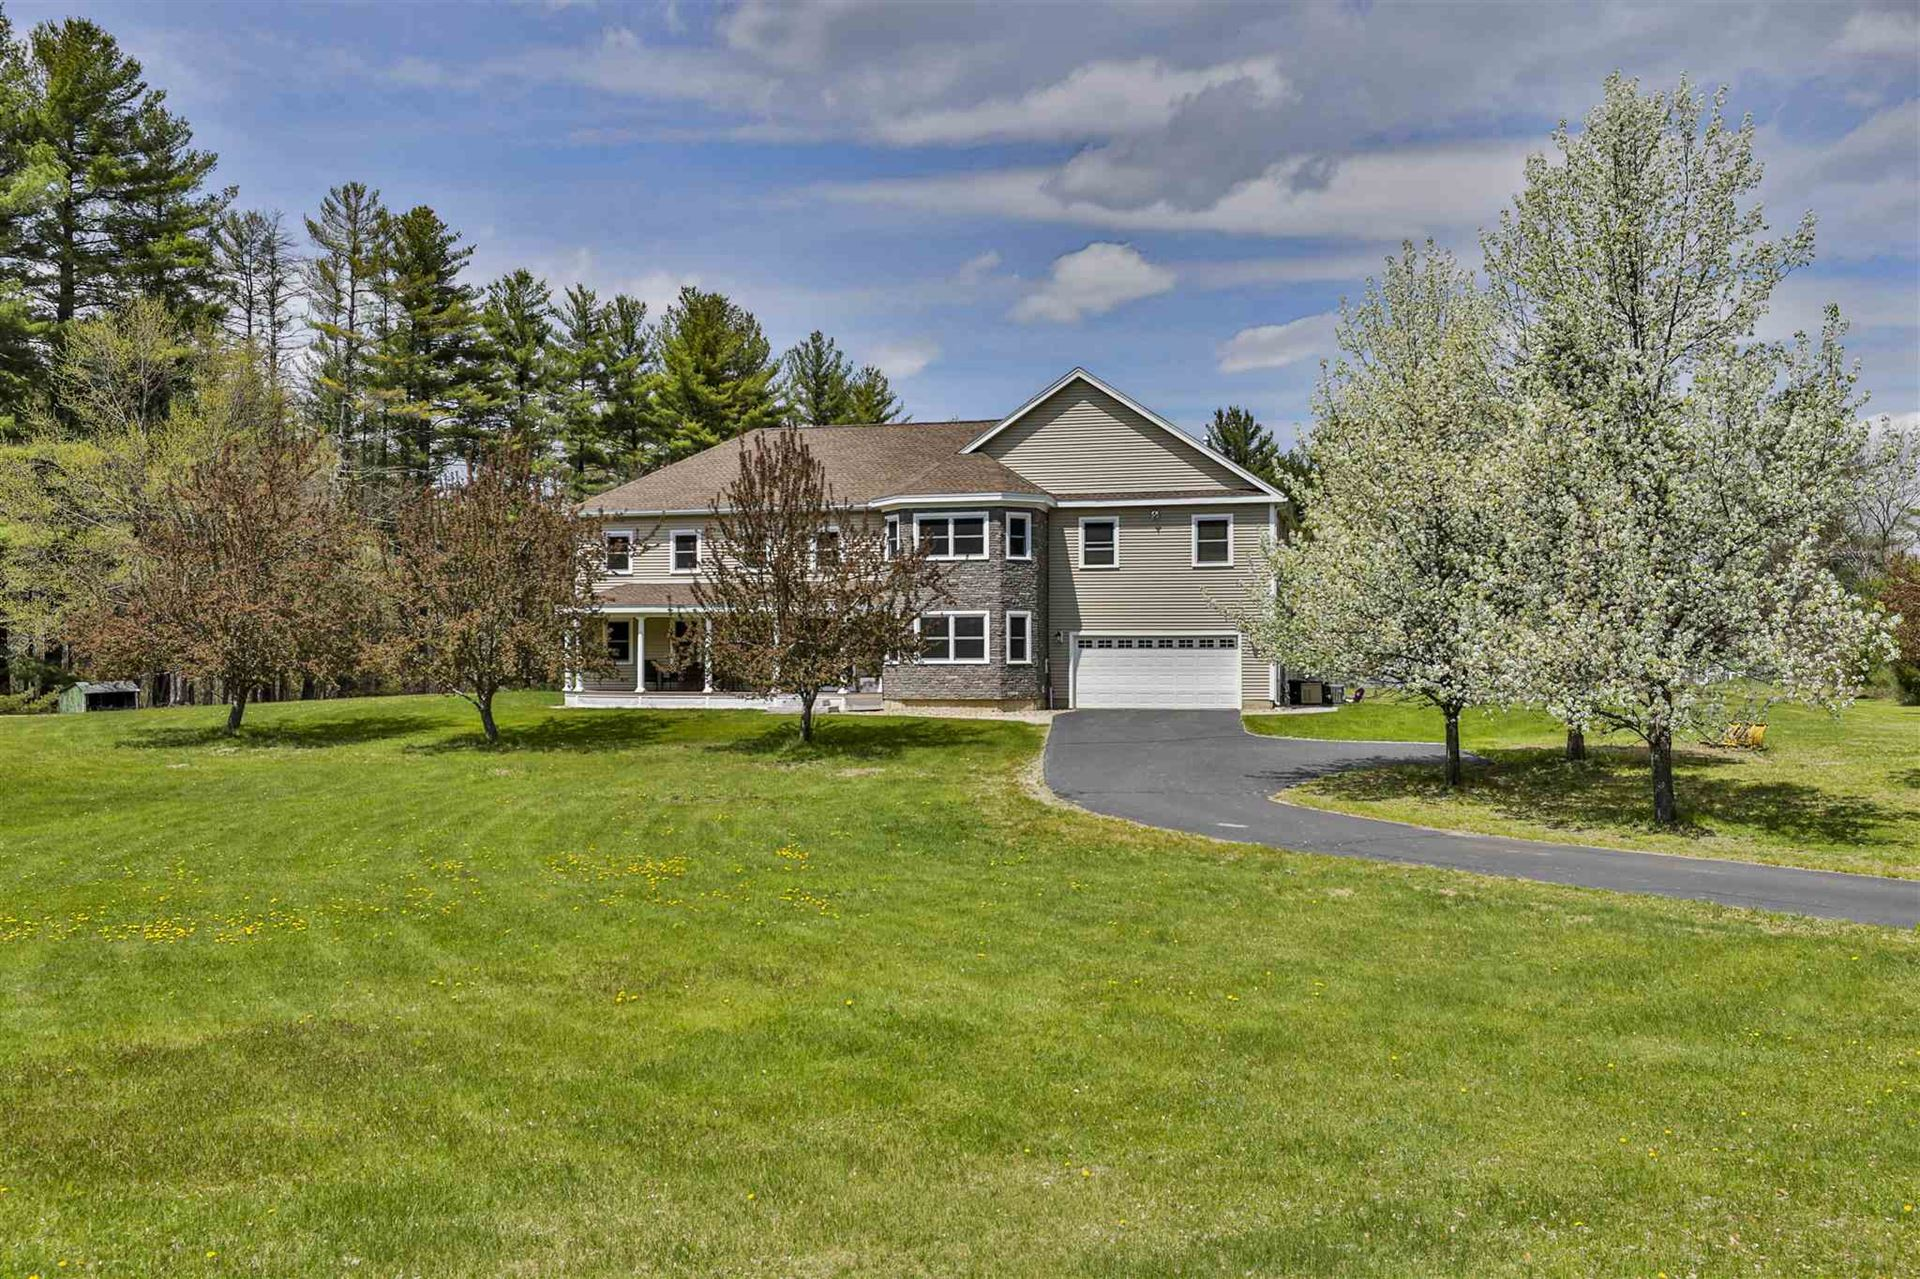 168 Witches Spring Road, Hollis, NH 03049 - #: 4804775